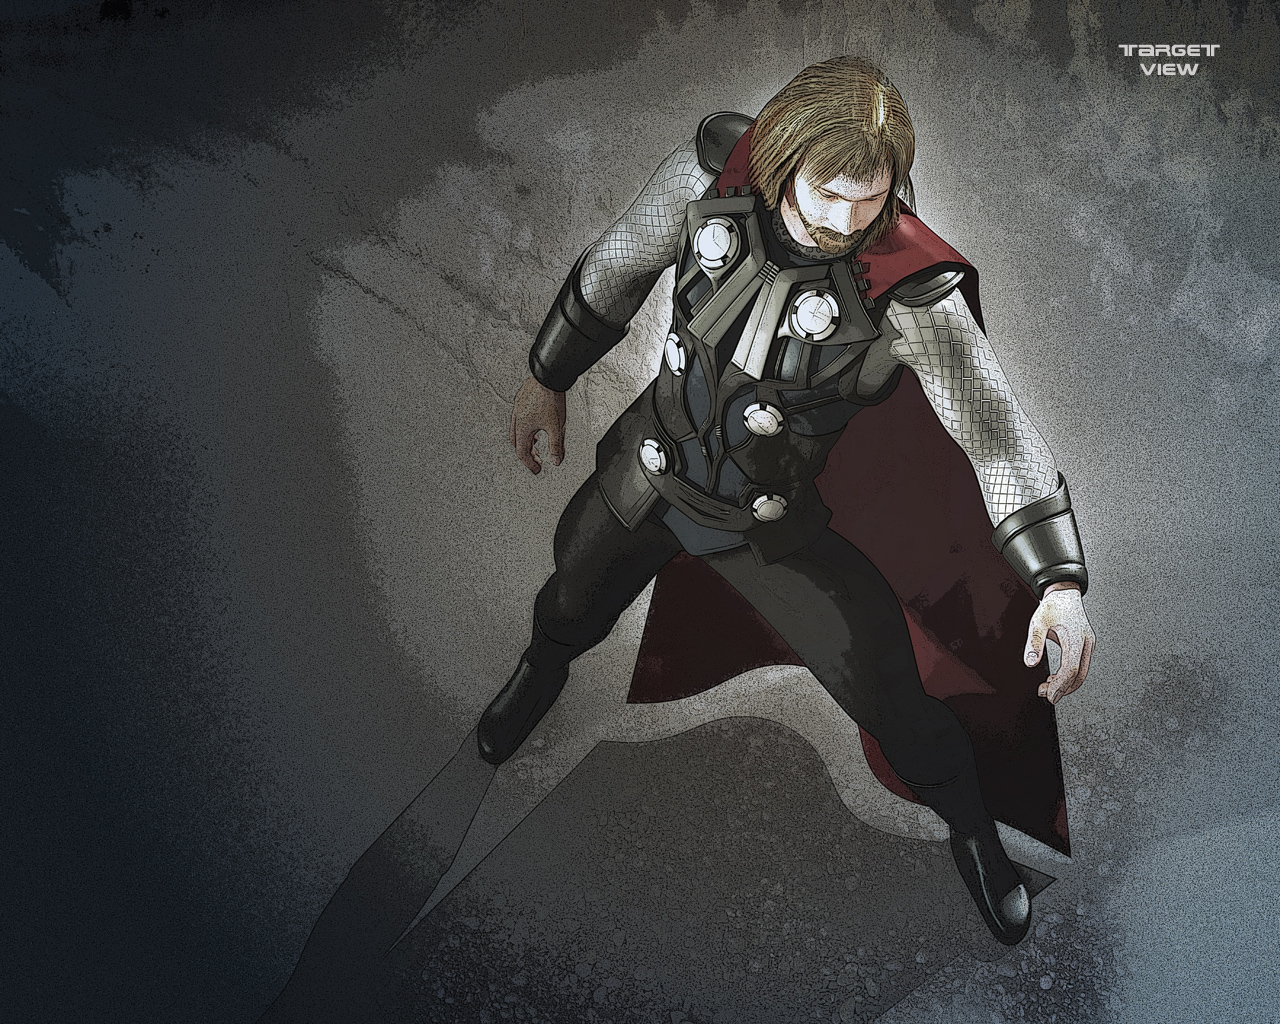 Thor in Theatres may 2011